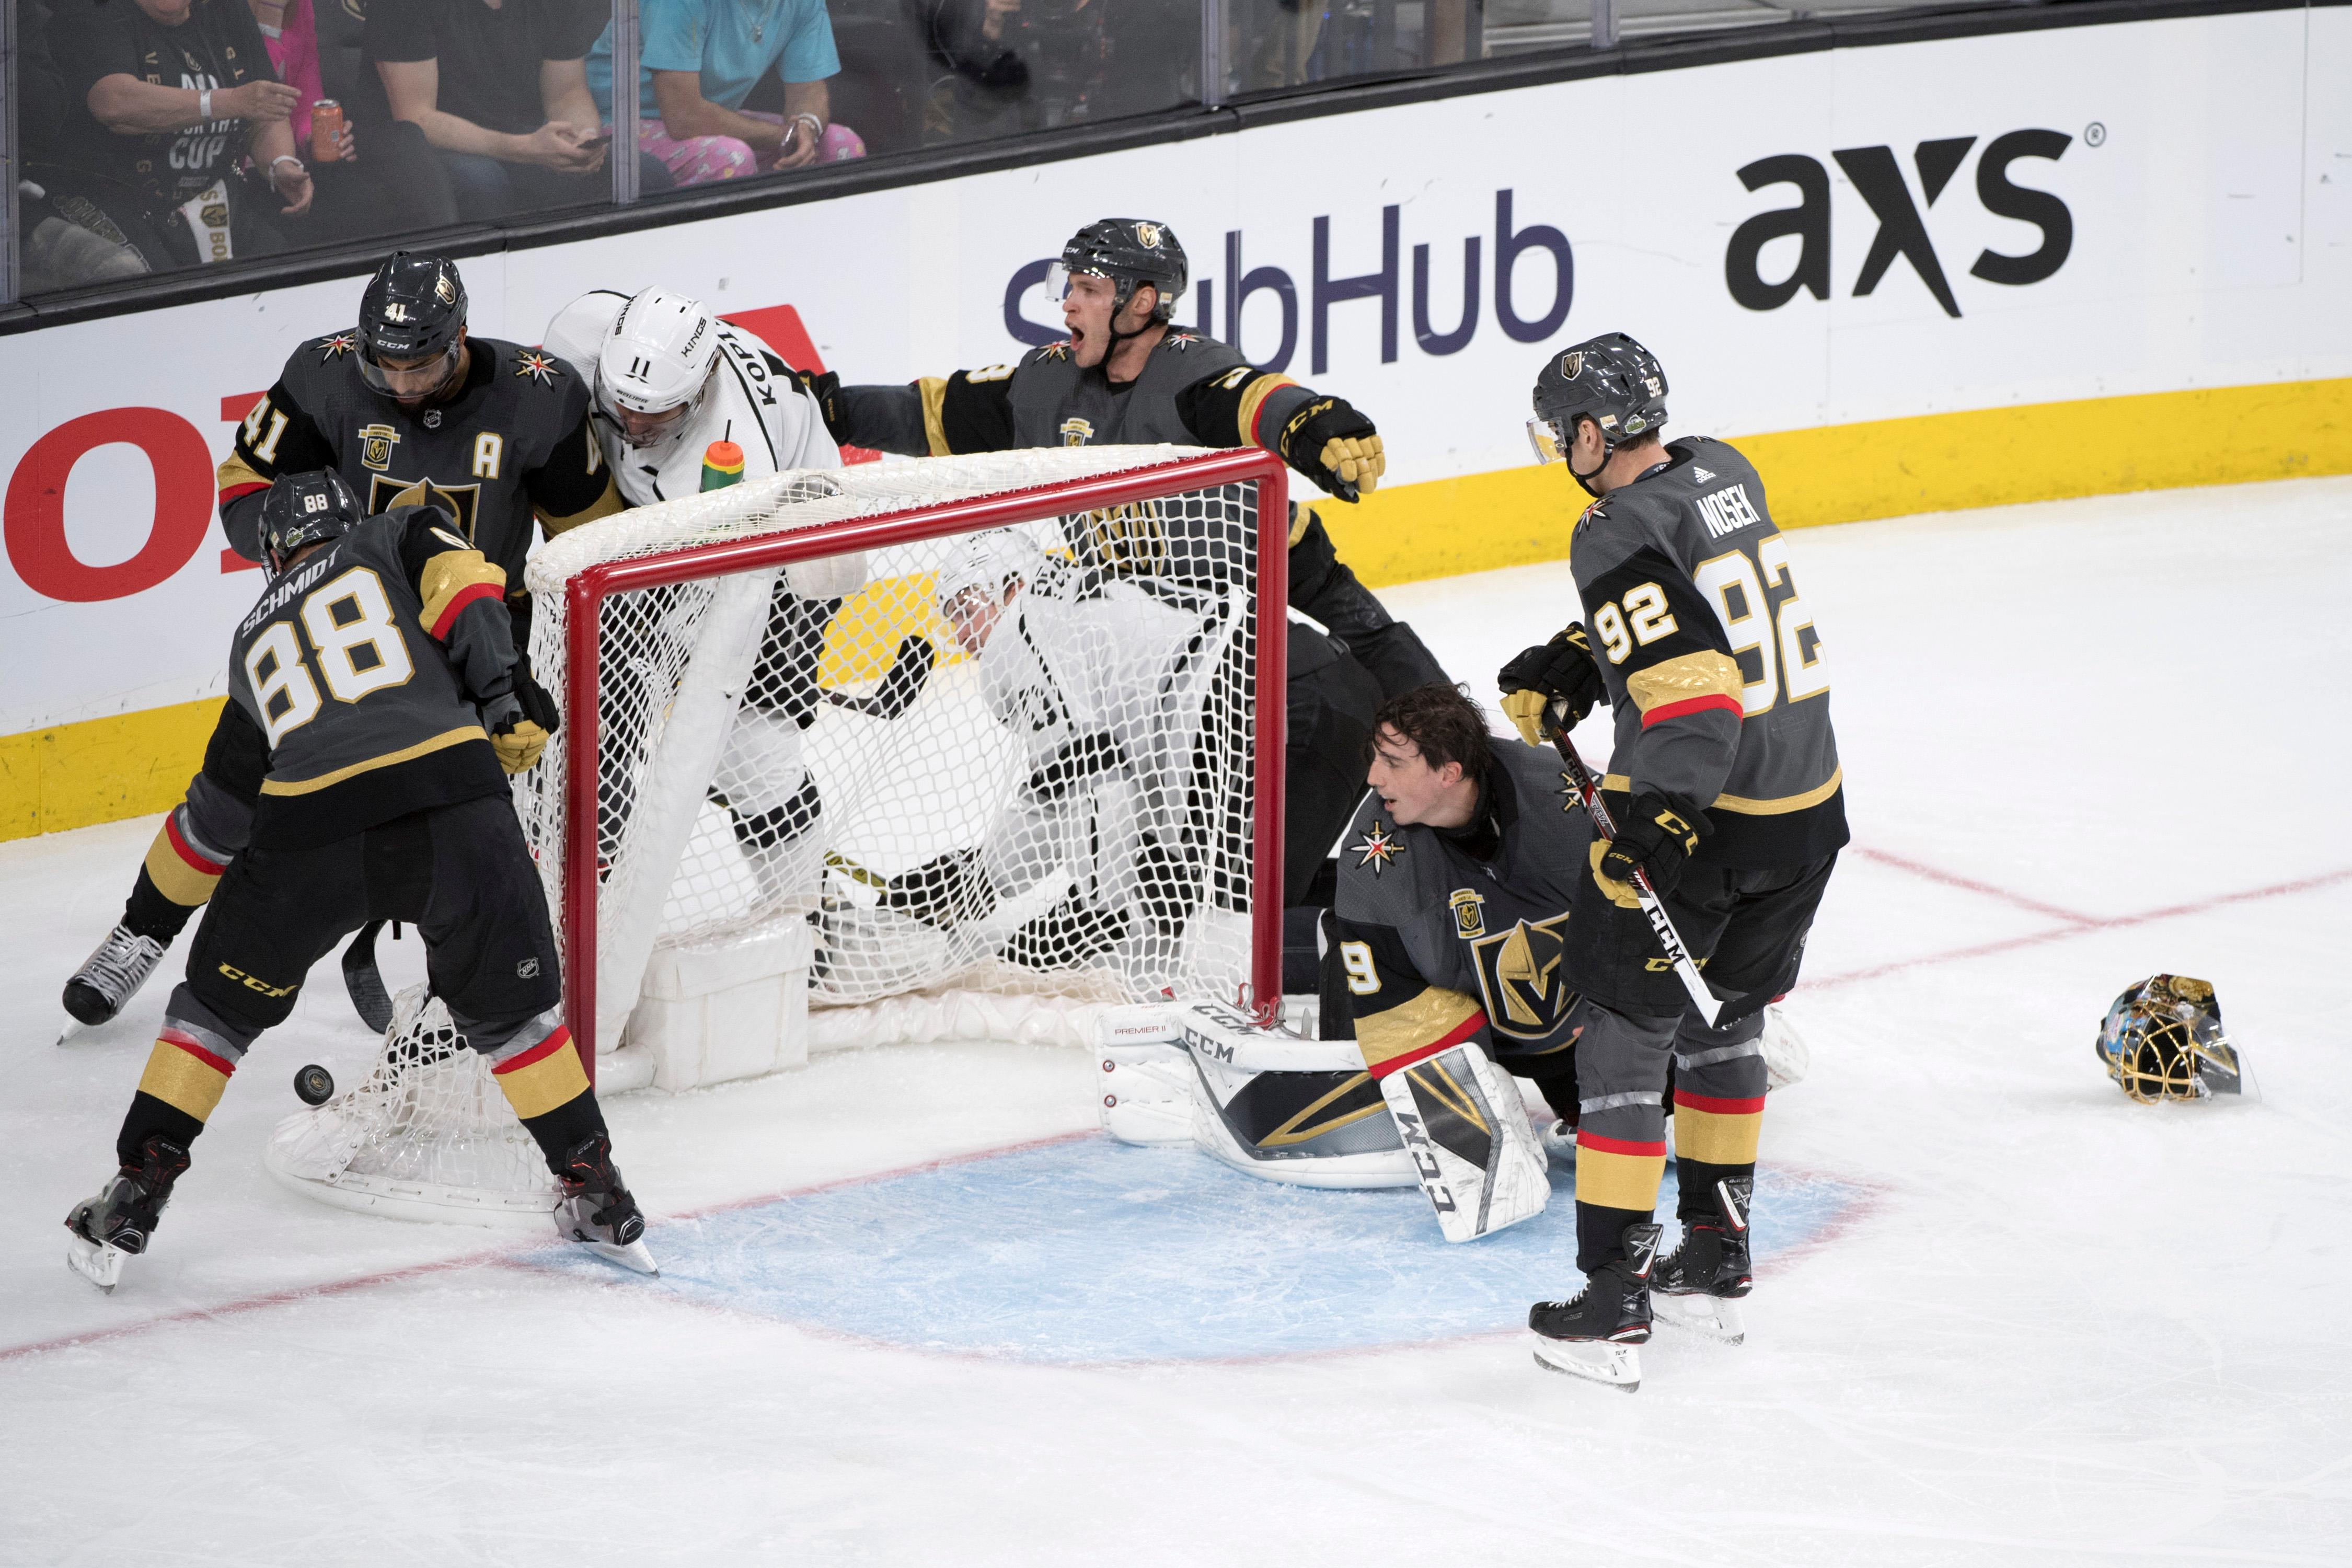 Vegas Golden Knights goaltender Marc-Andre Fleury (29) watches teammates try to clear the puck after losing his helmet during the third period of Game 1 of their NHL hockey first-round playoff series against the Los Angeles Kings Wednesday, April 11, 2018 at T-Mobile Arena. The Knights won 1-0. CREDIT: Sam Morris/Las Vegas News Bureau